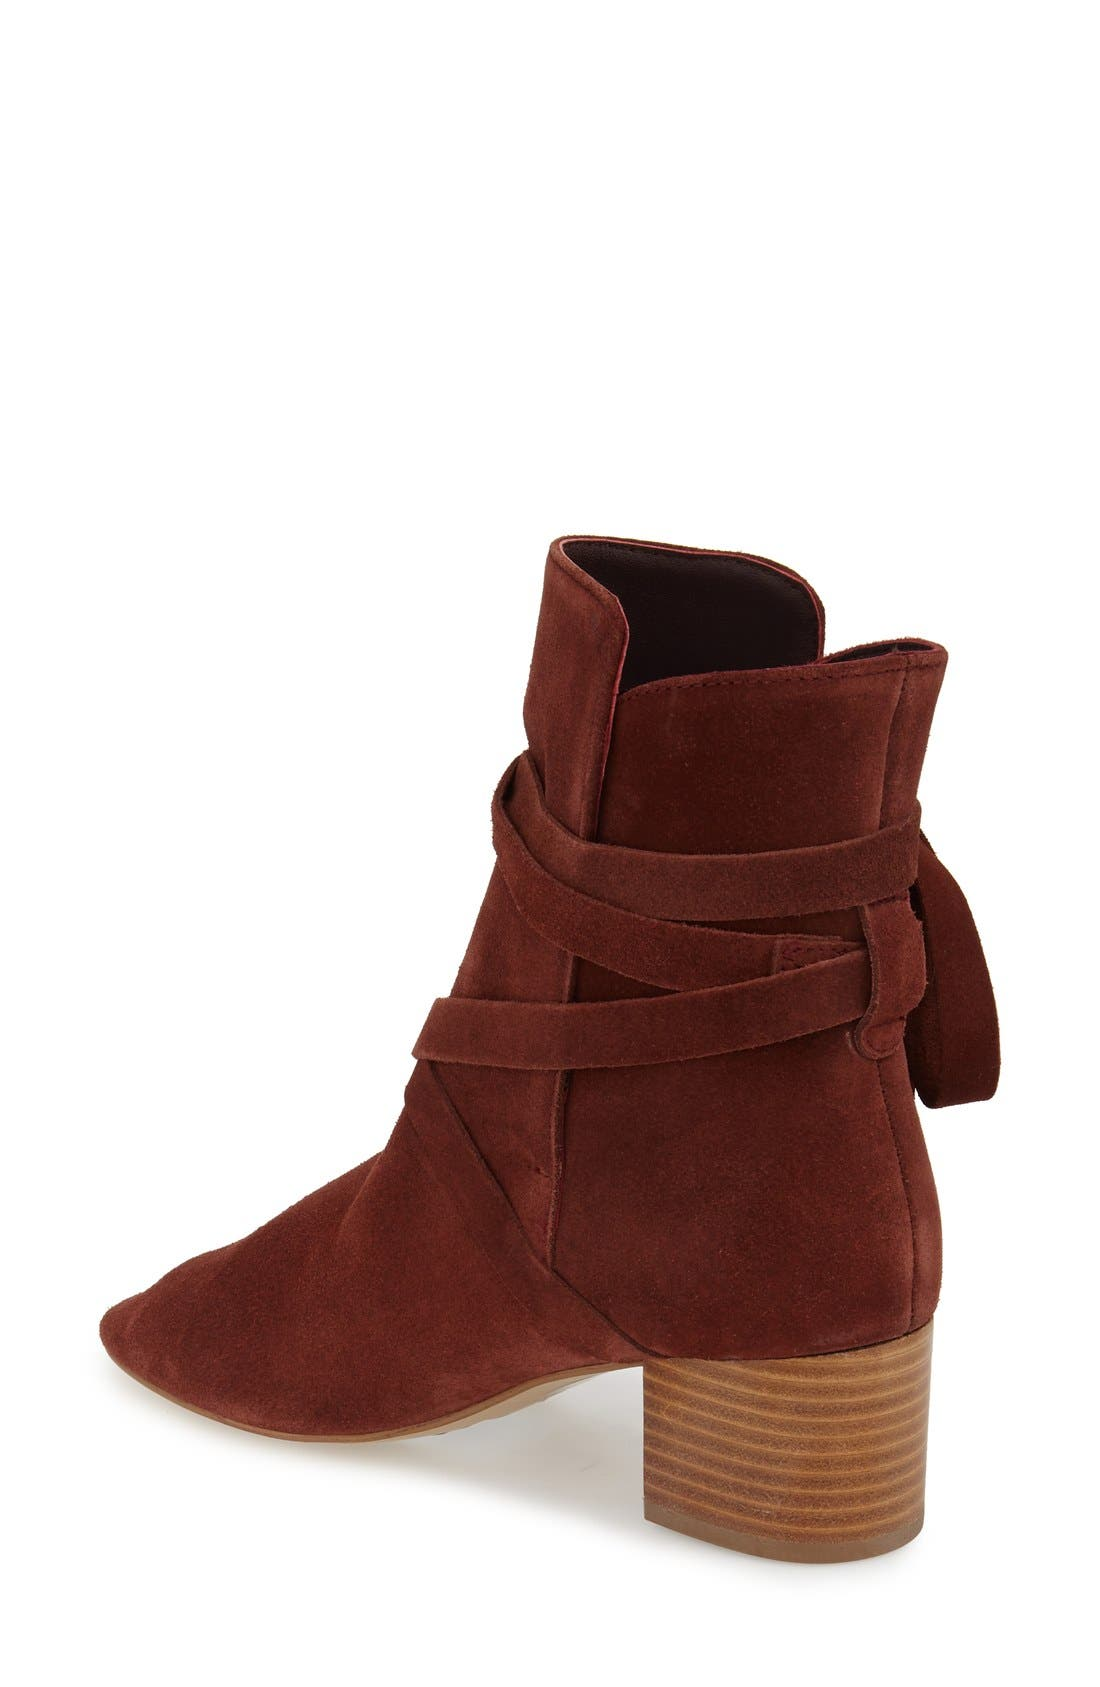 Alternate Image 2  - Topshop 'Anabel' Lace-Up Boots (Women)